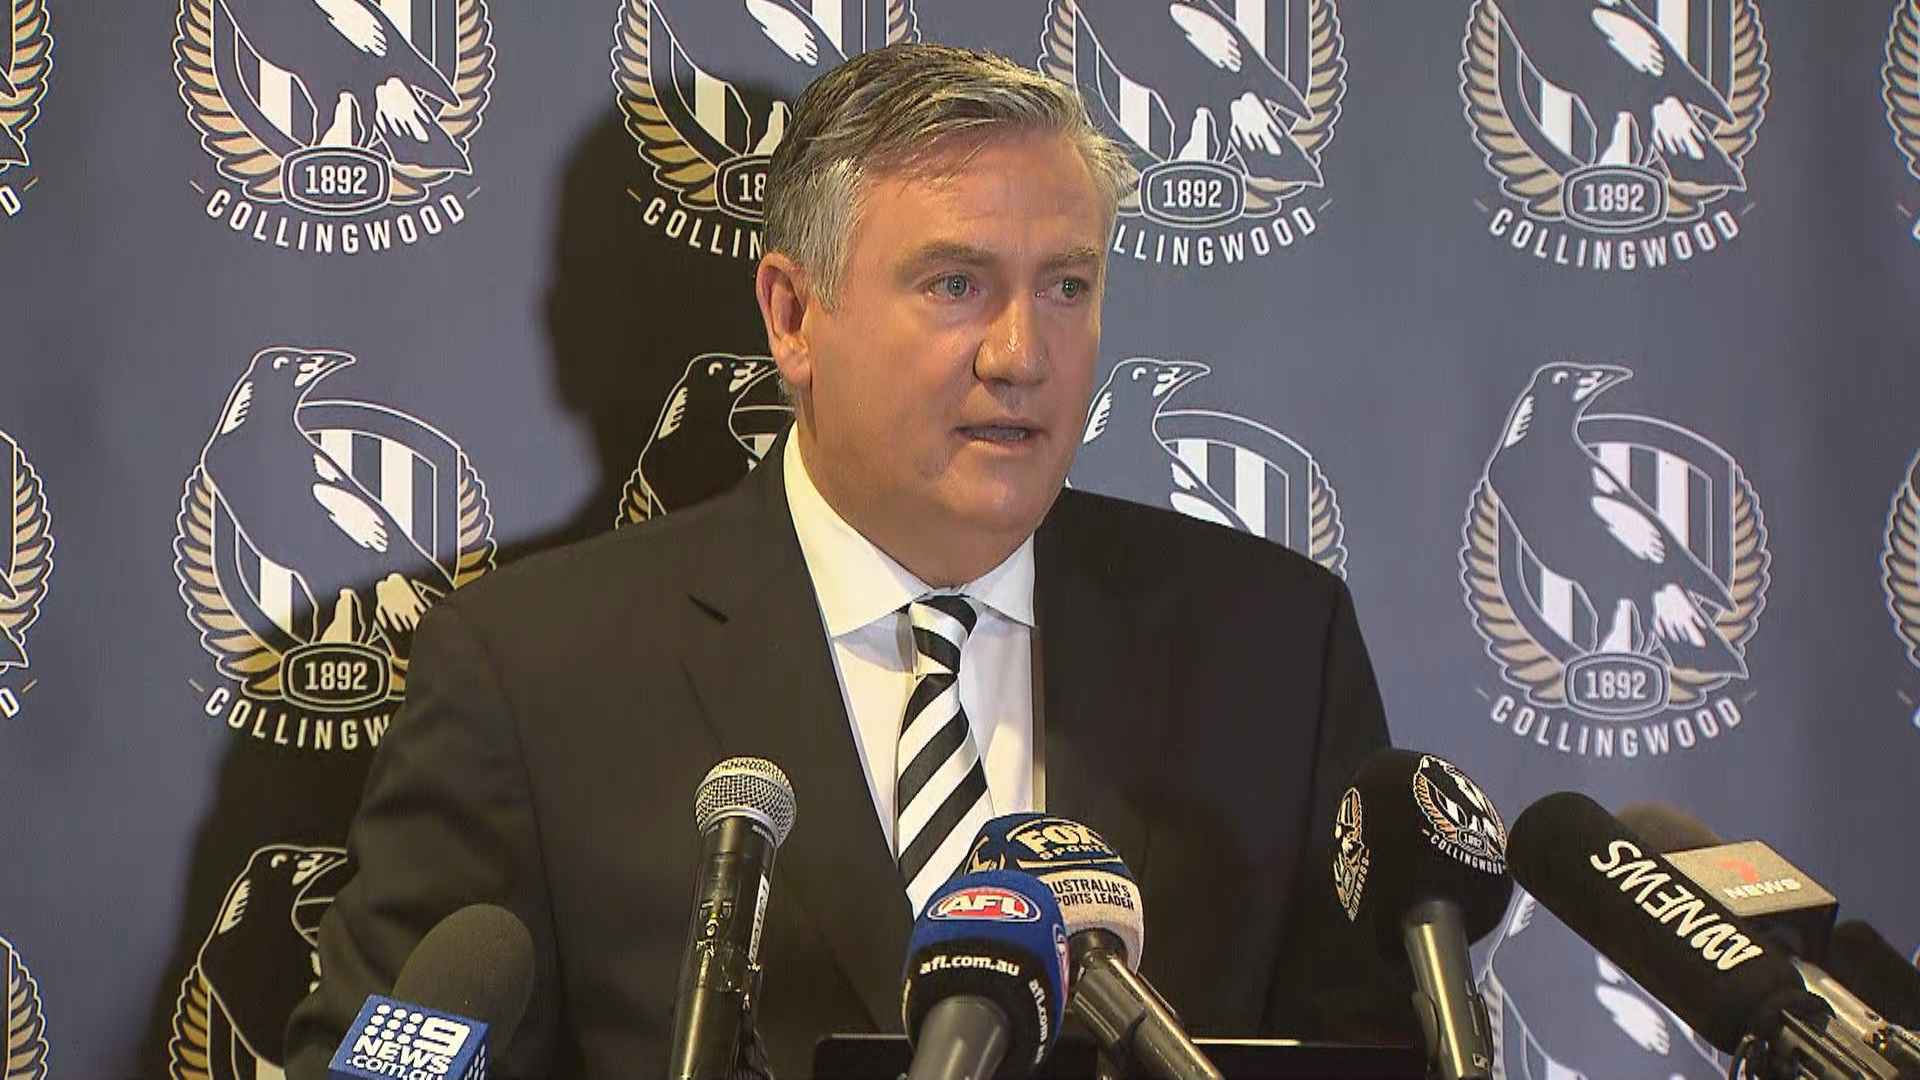 McGuire steps down as Collingwood president